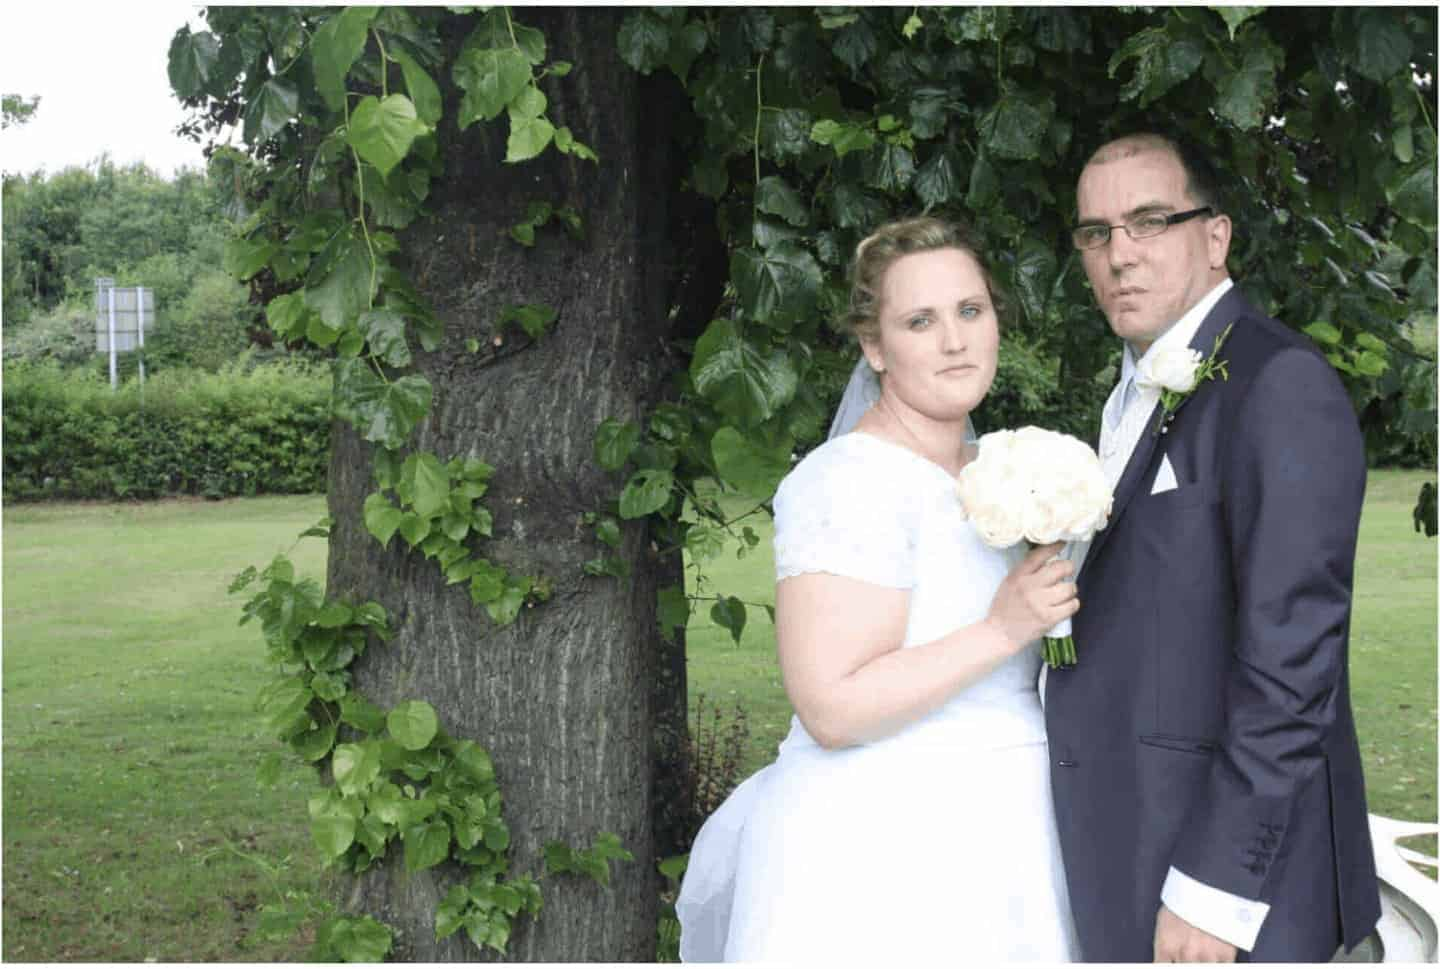 angela and john milnes wedding photo. a bride and groom standing bu a tree and holding flowers.